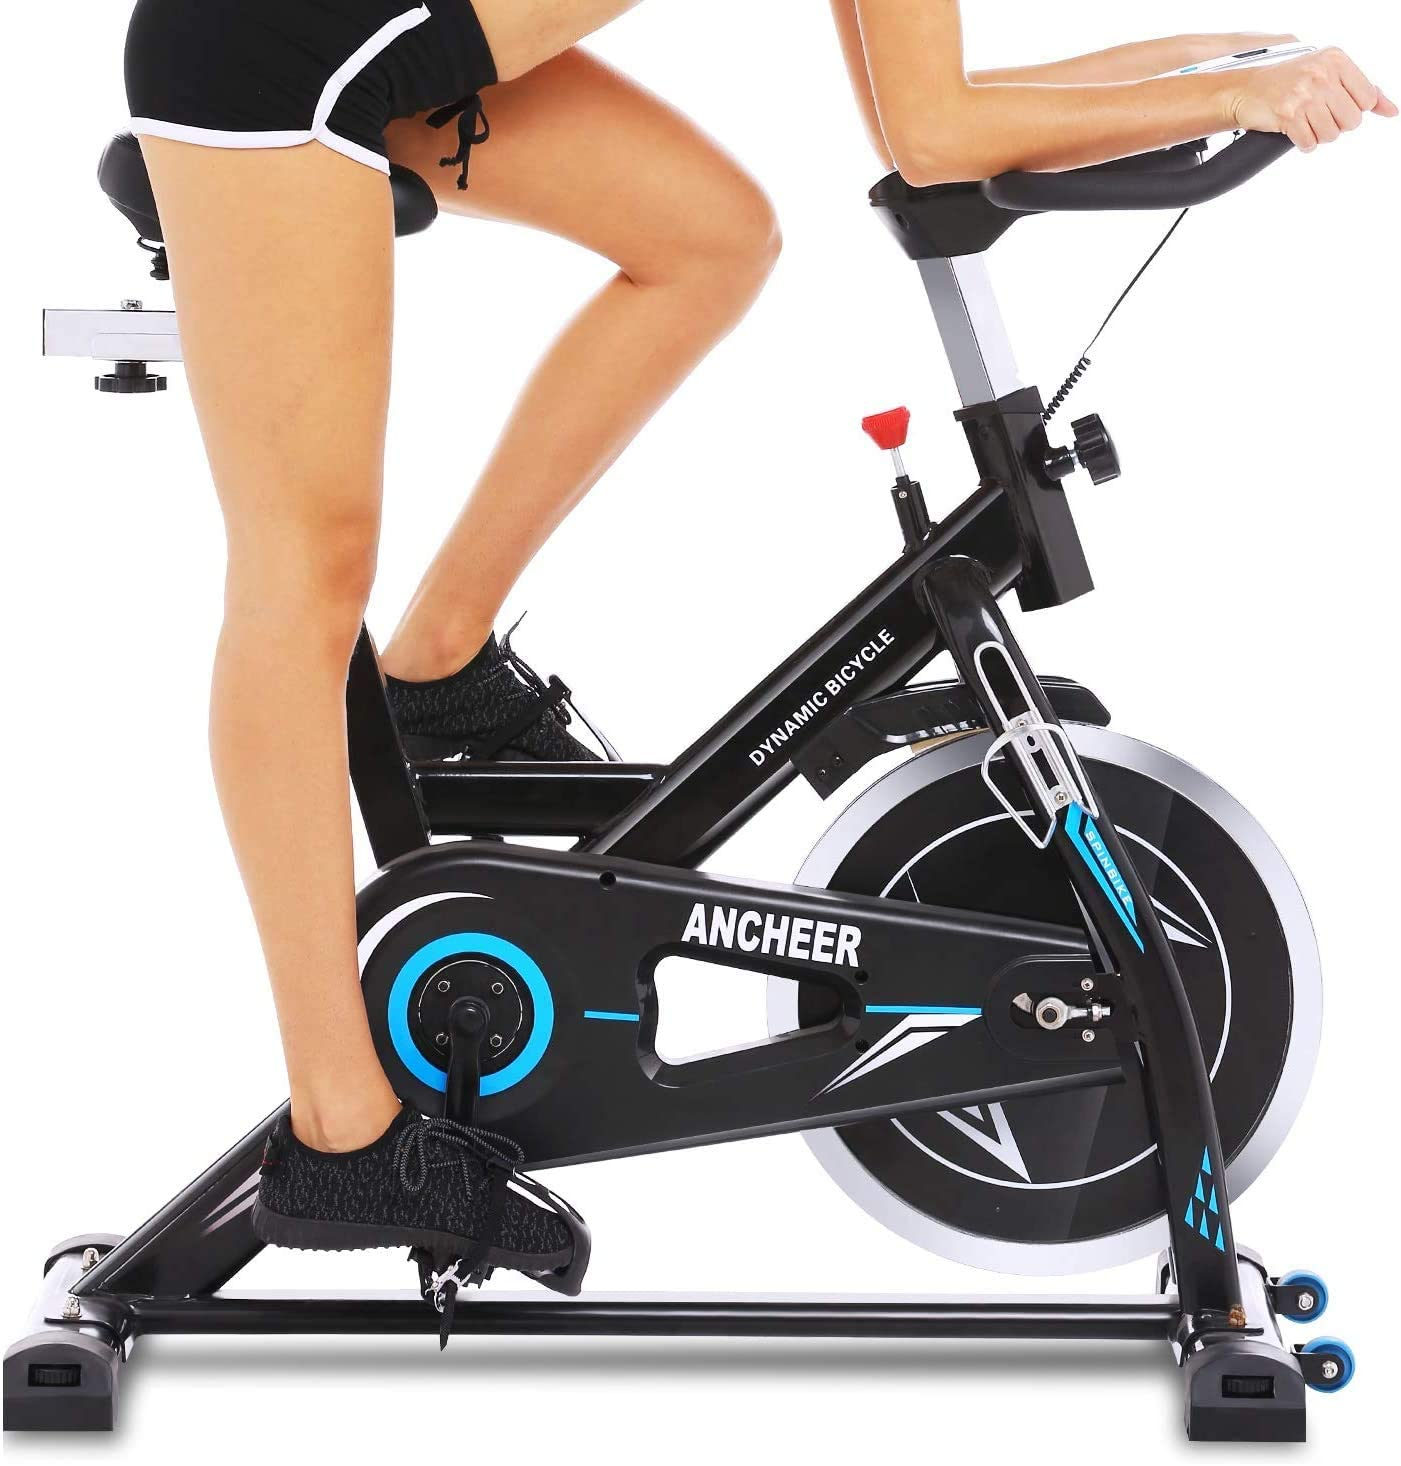 ANCHEER Exercise Bike